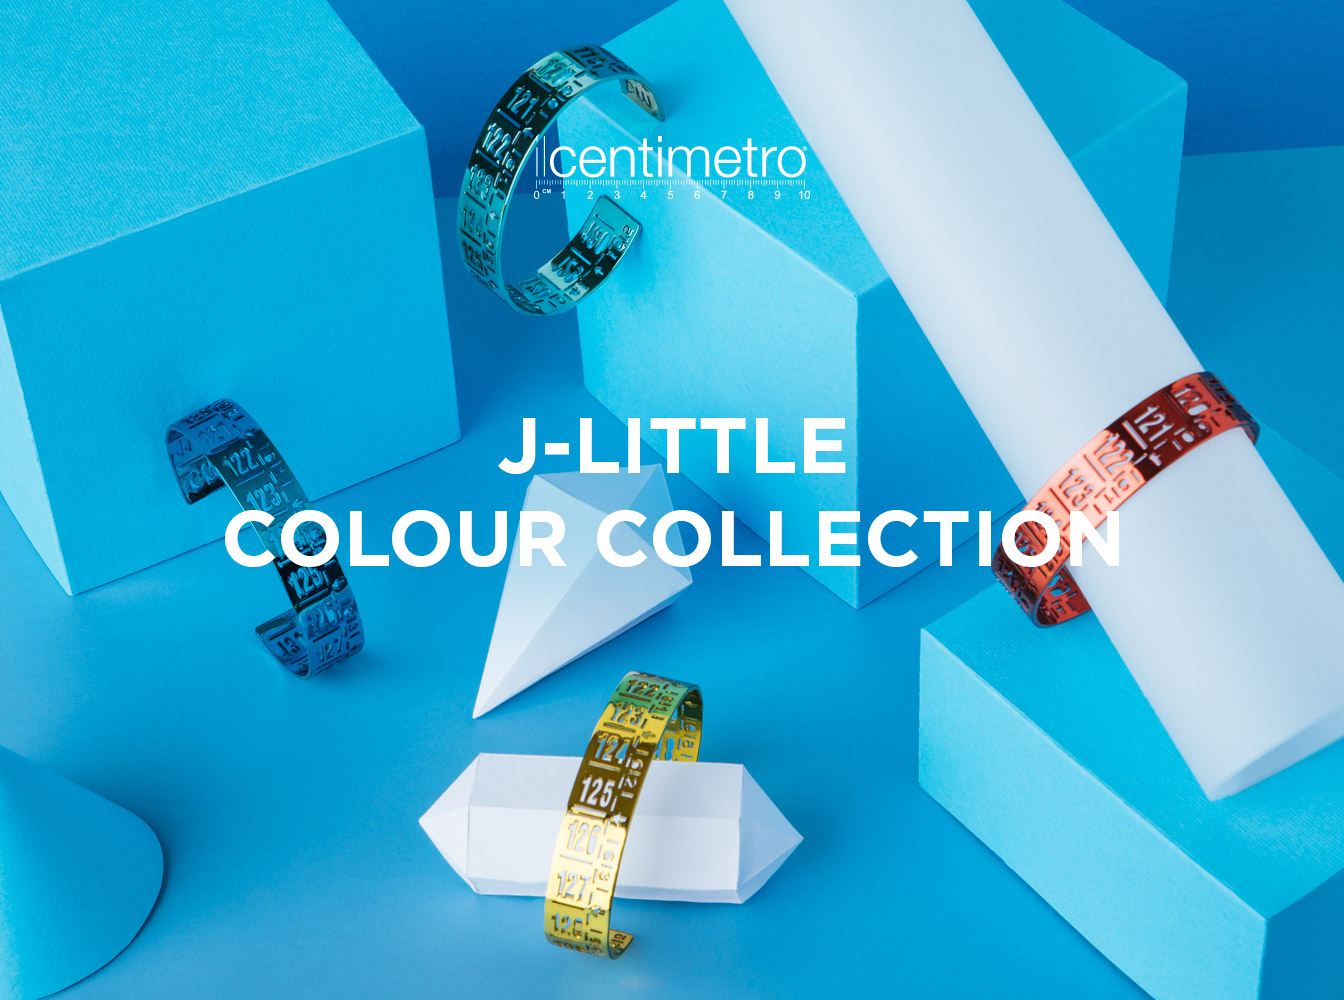 J-Little Colour